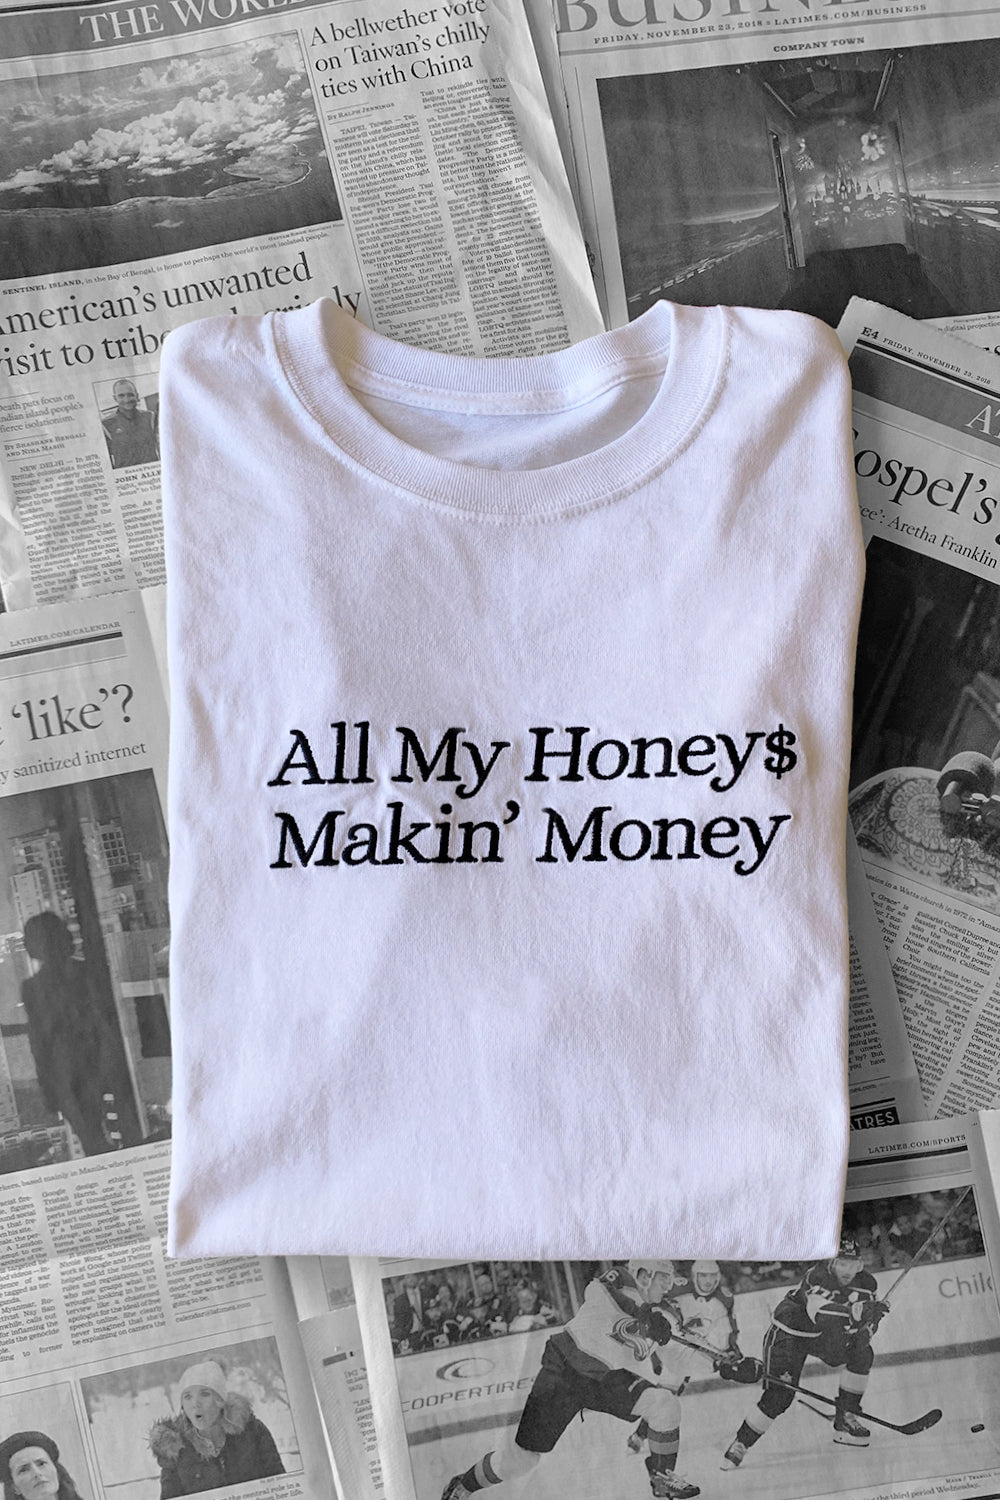 Honey $ Makin Money T-shirt